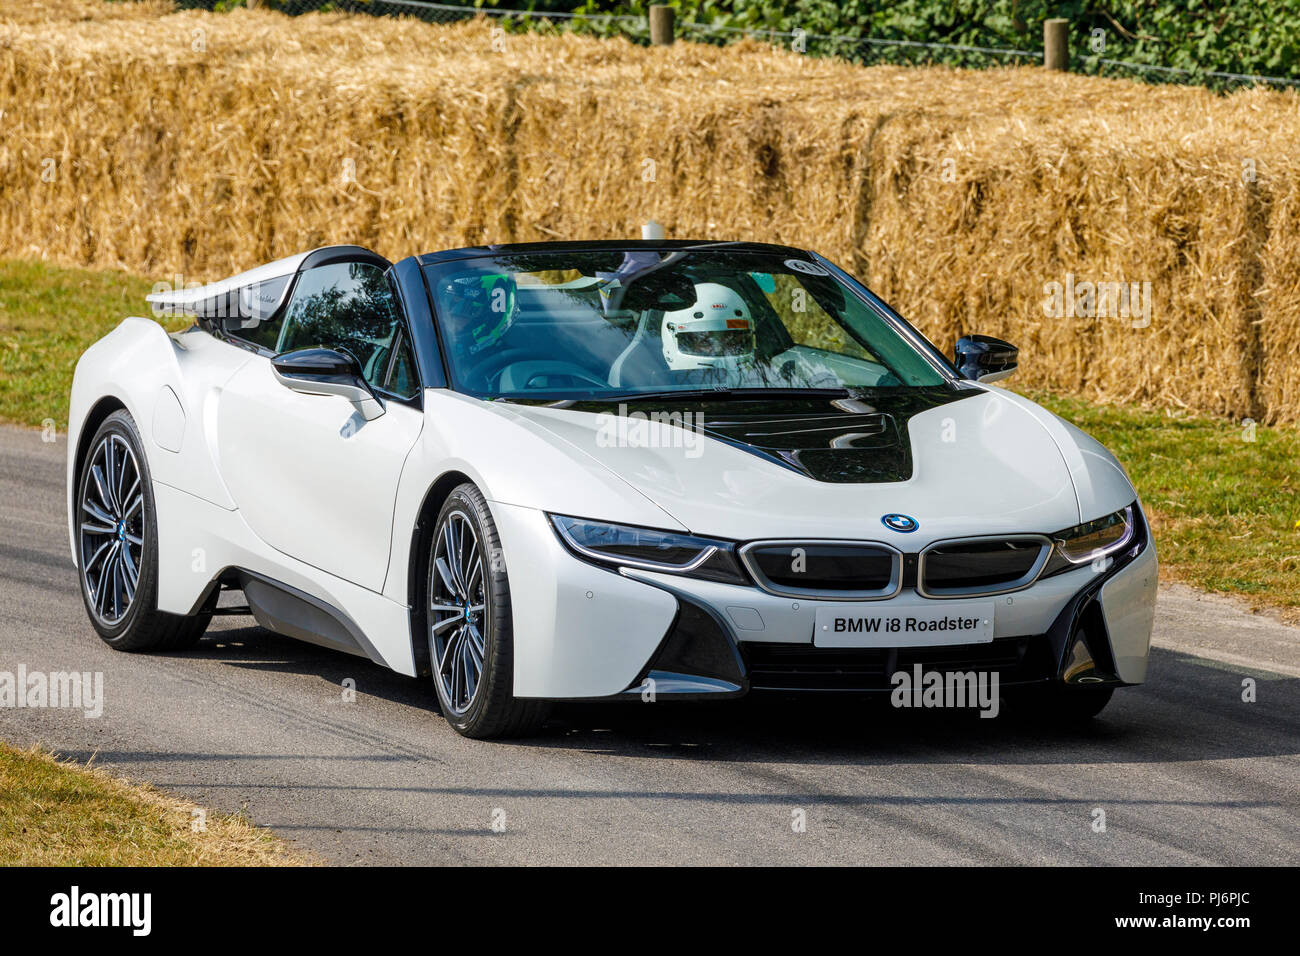 2018 Bmw I8 Roadster On It S Demonstration Hillclimb Run At The 2018